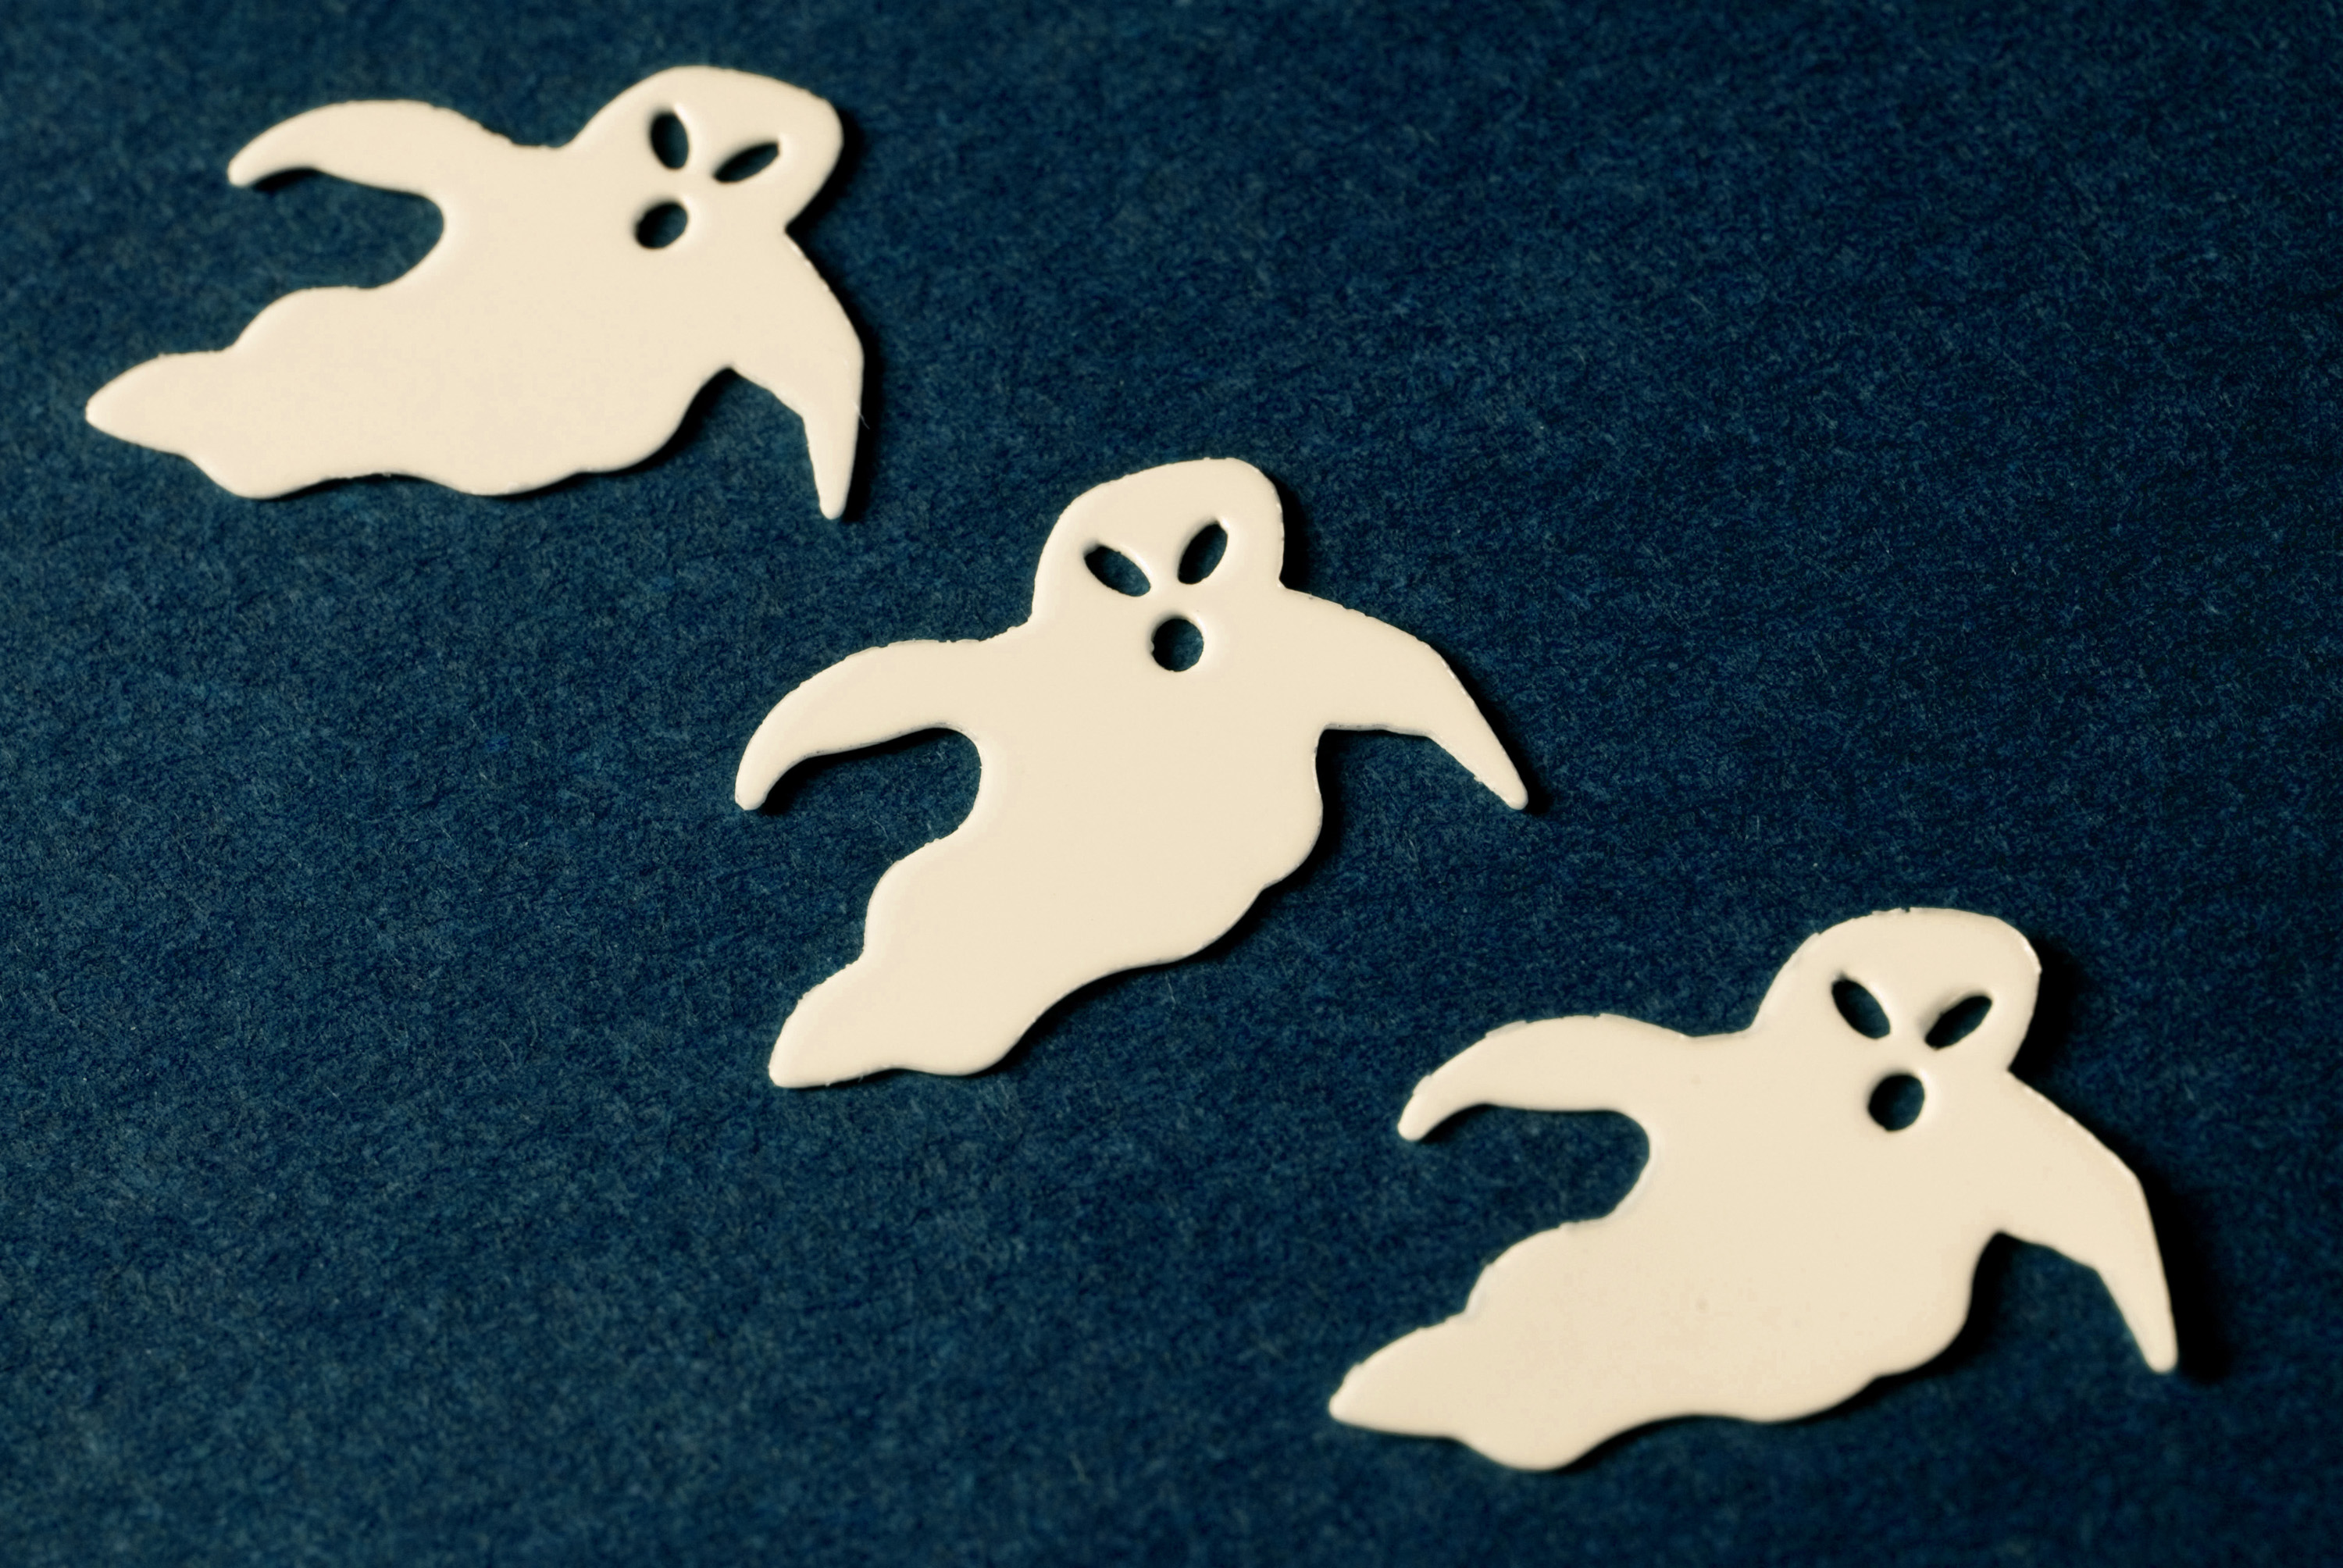 white ghost outline shapes on blue background